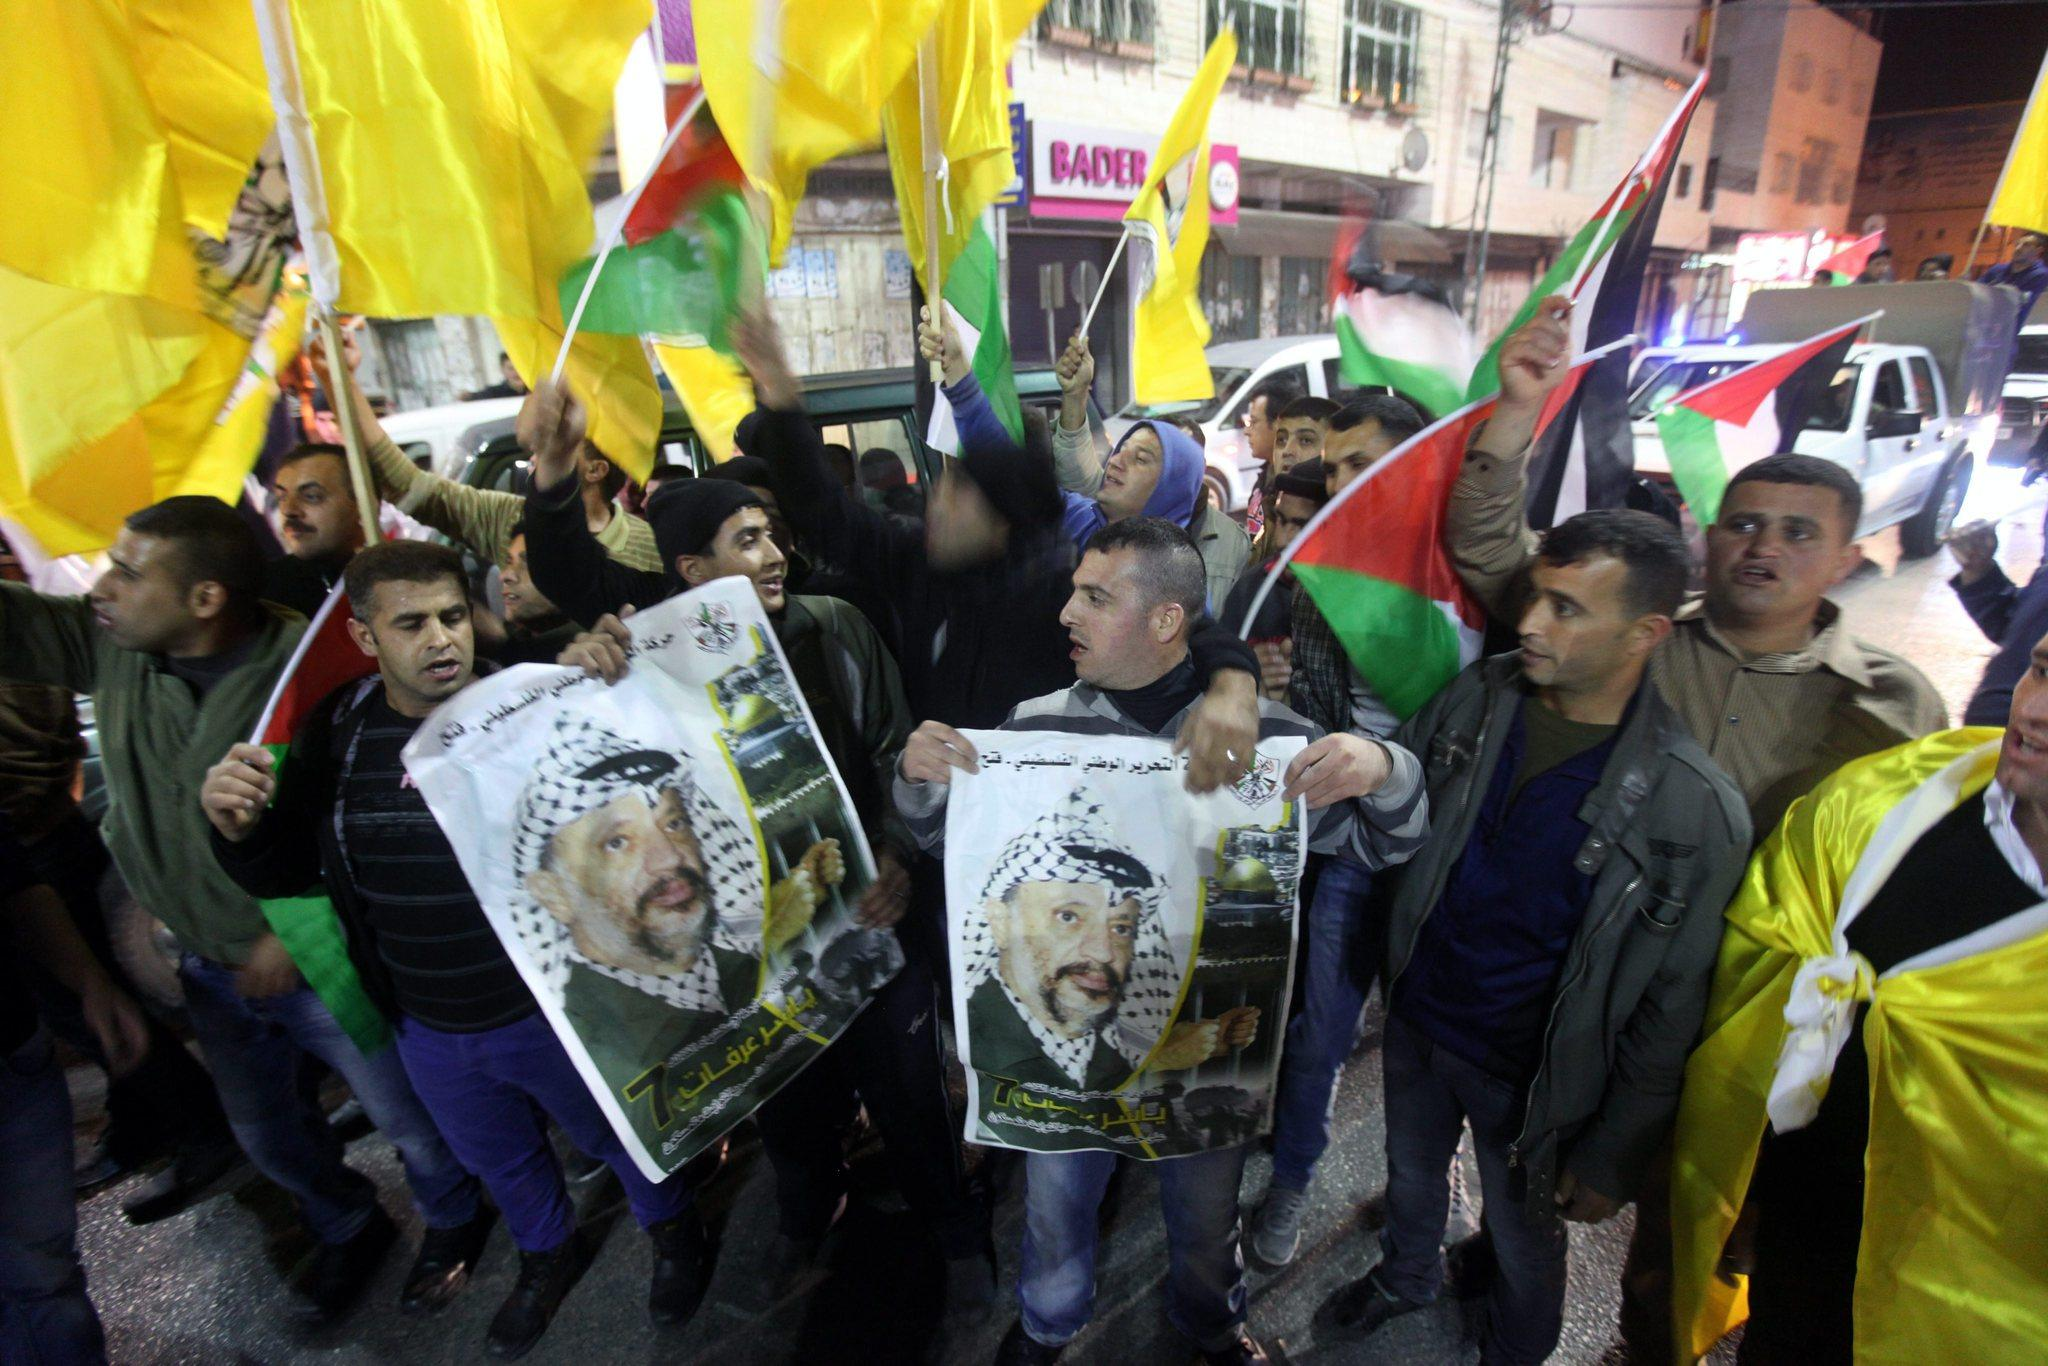 Palestinian supporters of the Fatah party carry posters of Yasser Arafat, the late Palestinian Authority president, in the West Bank city of Hebron. They were expressing support for a move by The Palestinian Authority to join 15 international bodies and conventions.